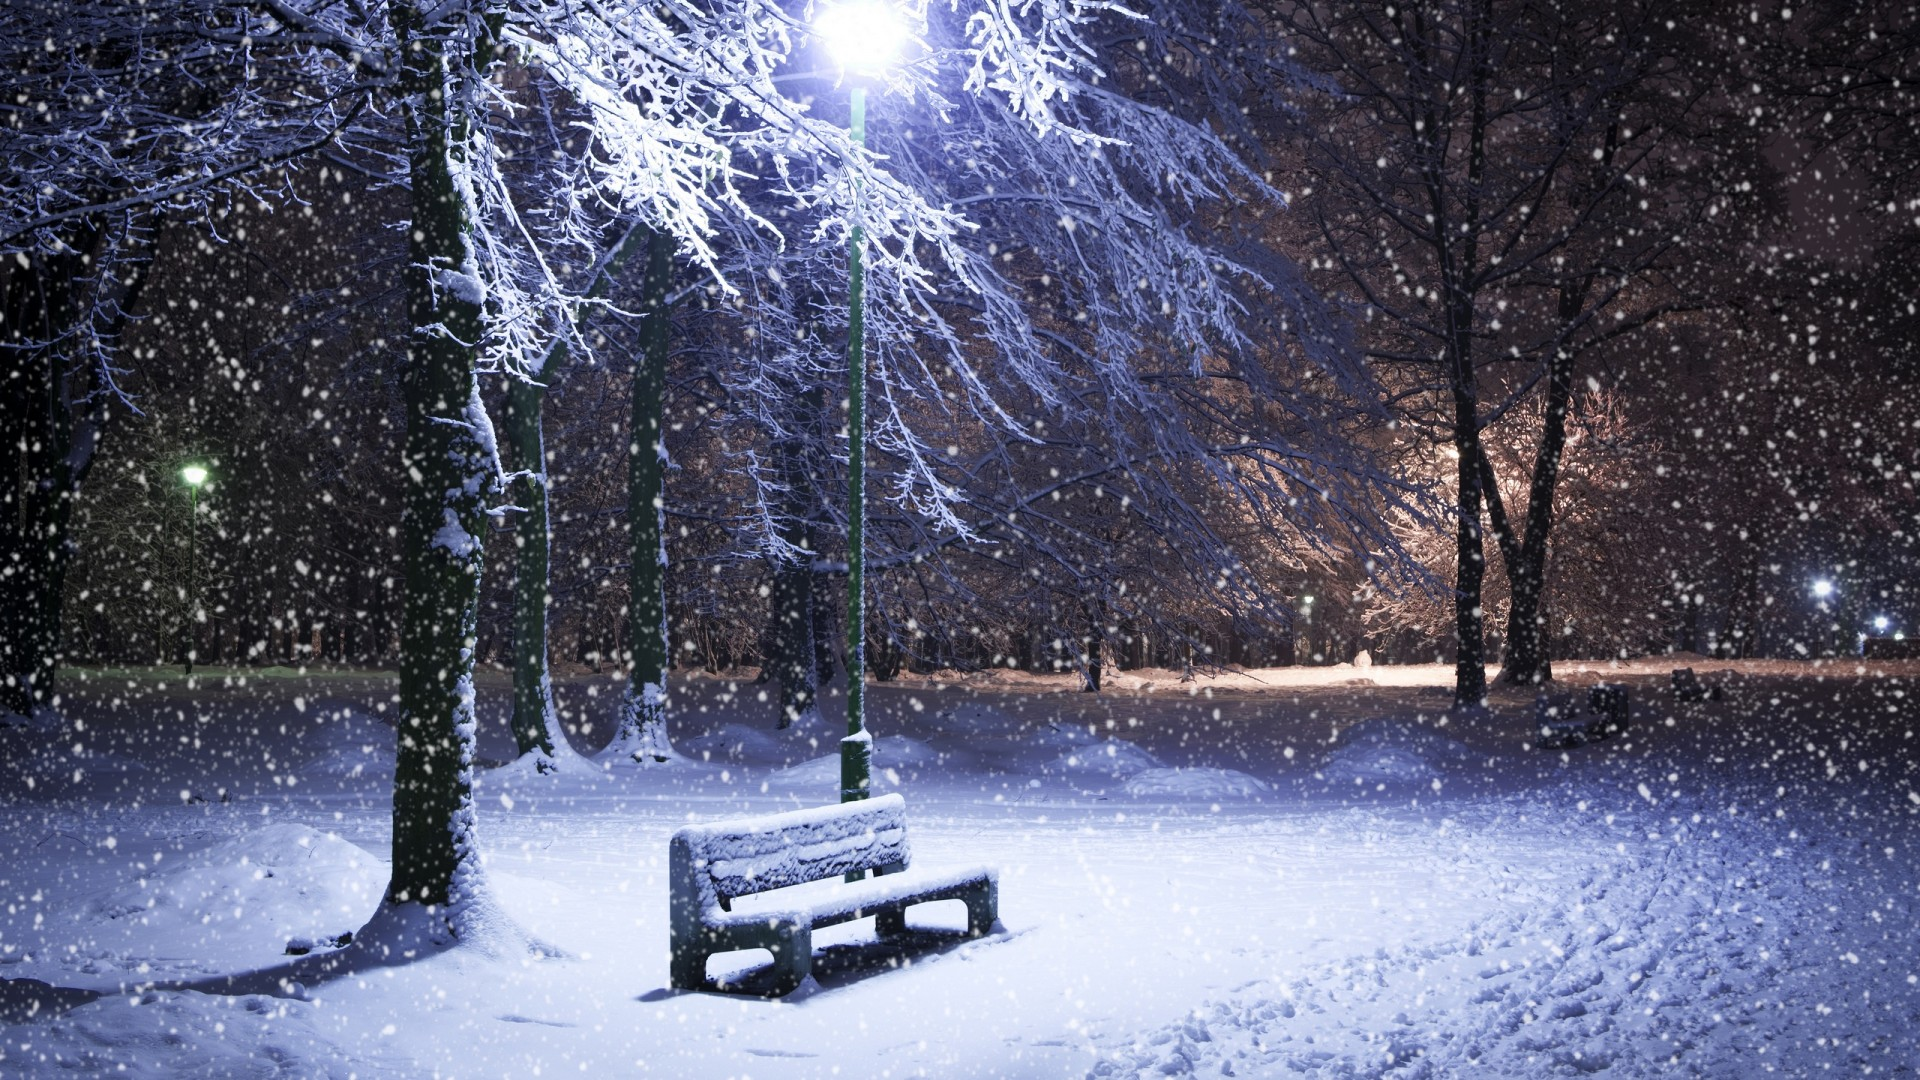 Snowfall Wallpaper Winter Snow House Wallpapers Hd 1920x1080px